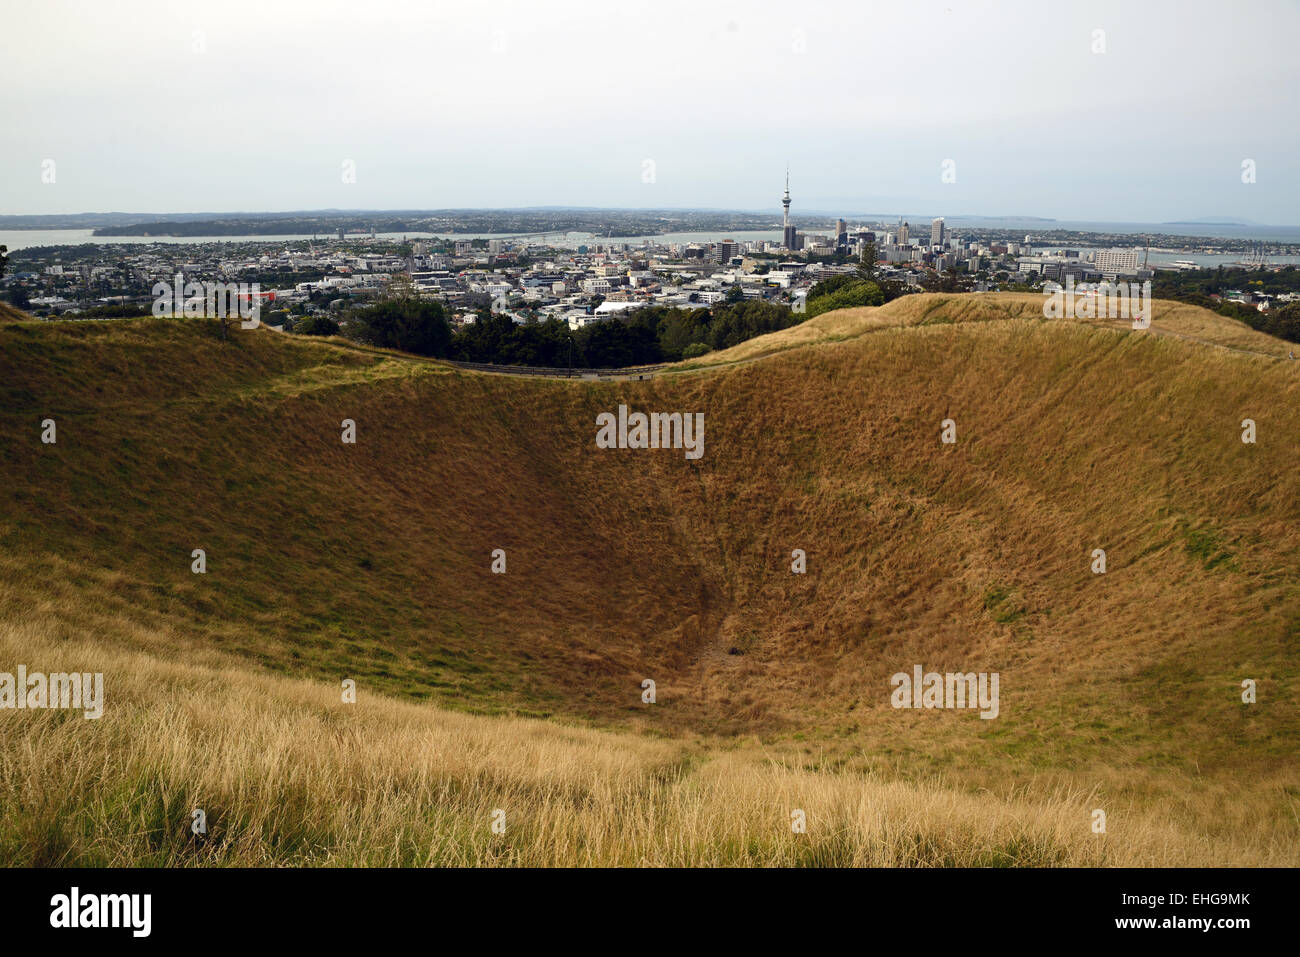 The crater of the Mount Eden volcano with Auckland city skyline, Northland, New Zealand - Stock Image